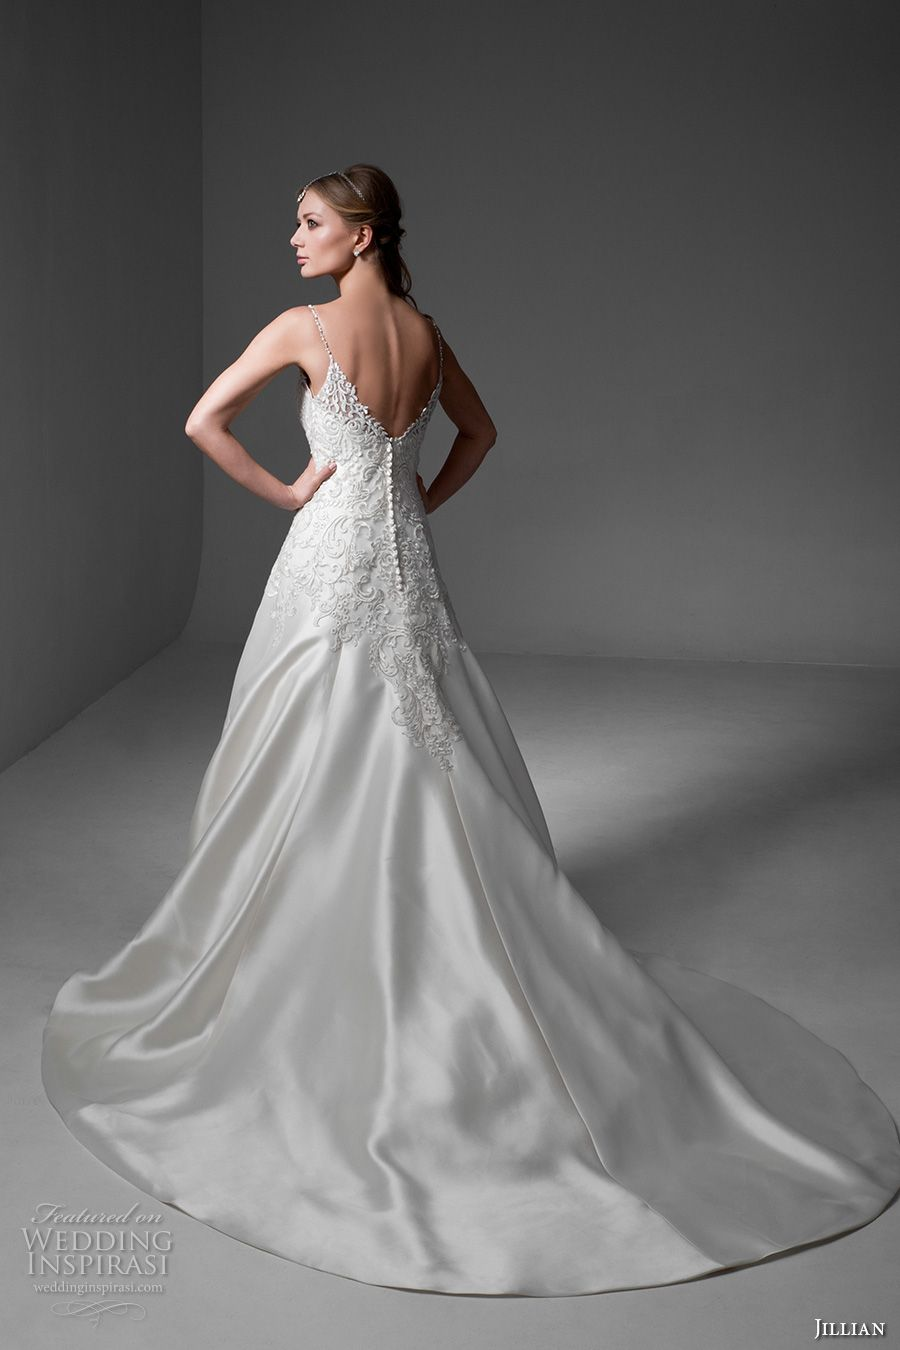 Wedding dresses v neck  Jillian  Wedding Dresses u ucArtemisiaud Bridal Collection